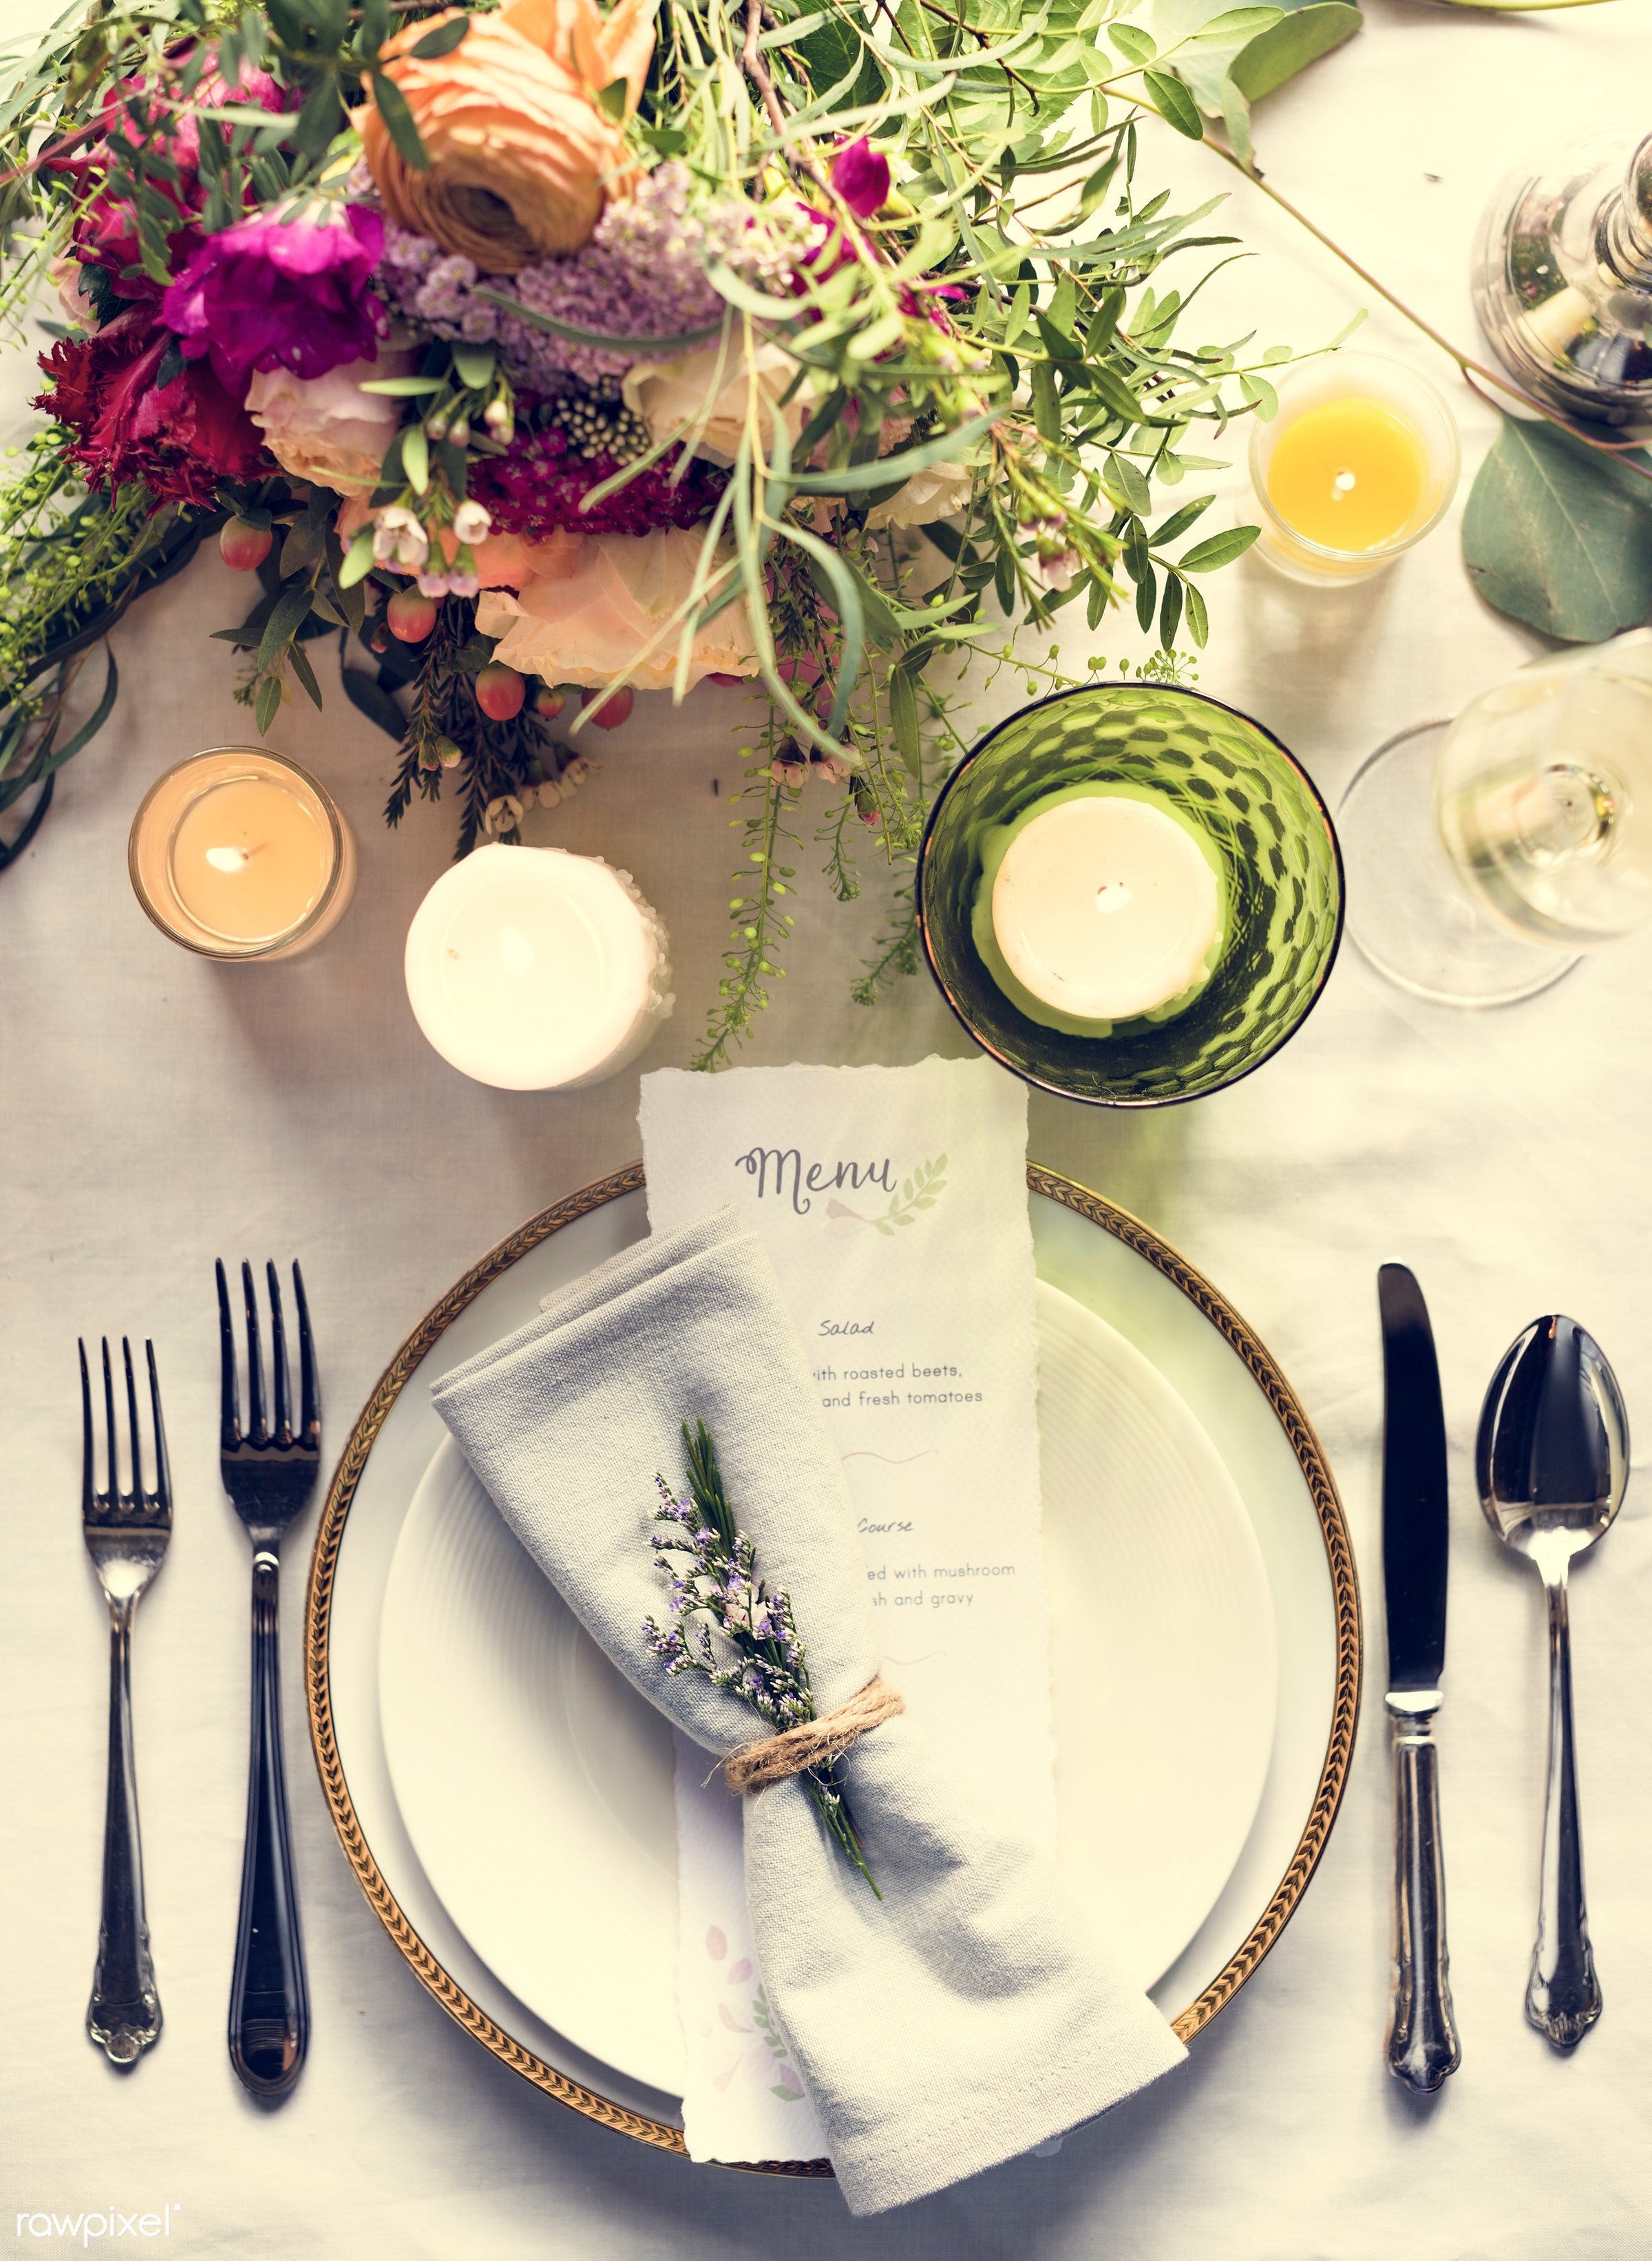 dish, bouquet, fancy, cutlery, silverware, leaf, leaves, party, decor, tablecloth, event, gather, candles, card, banquet,...